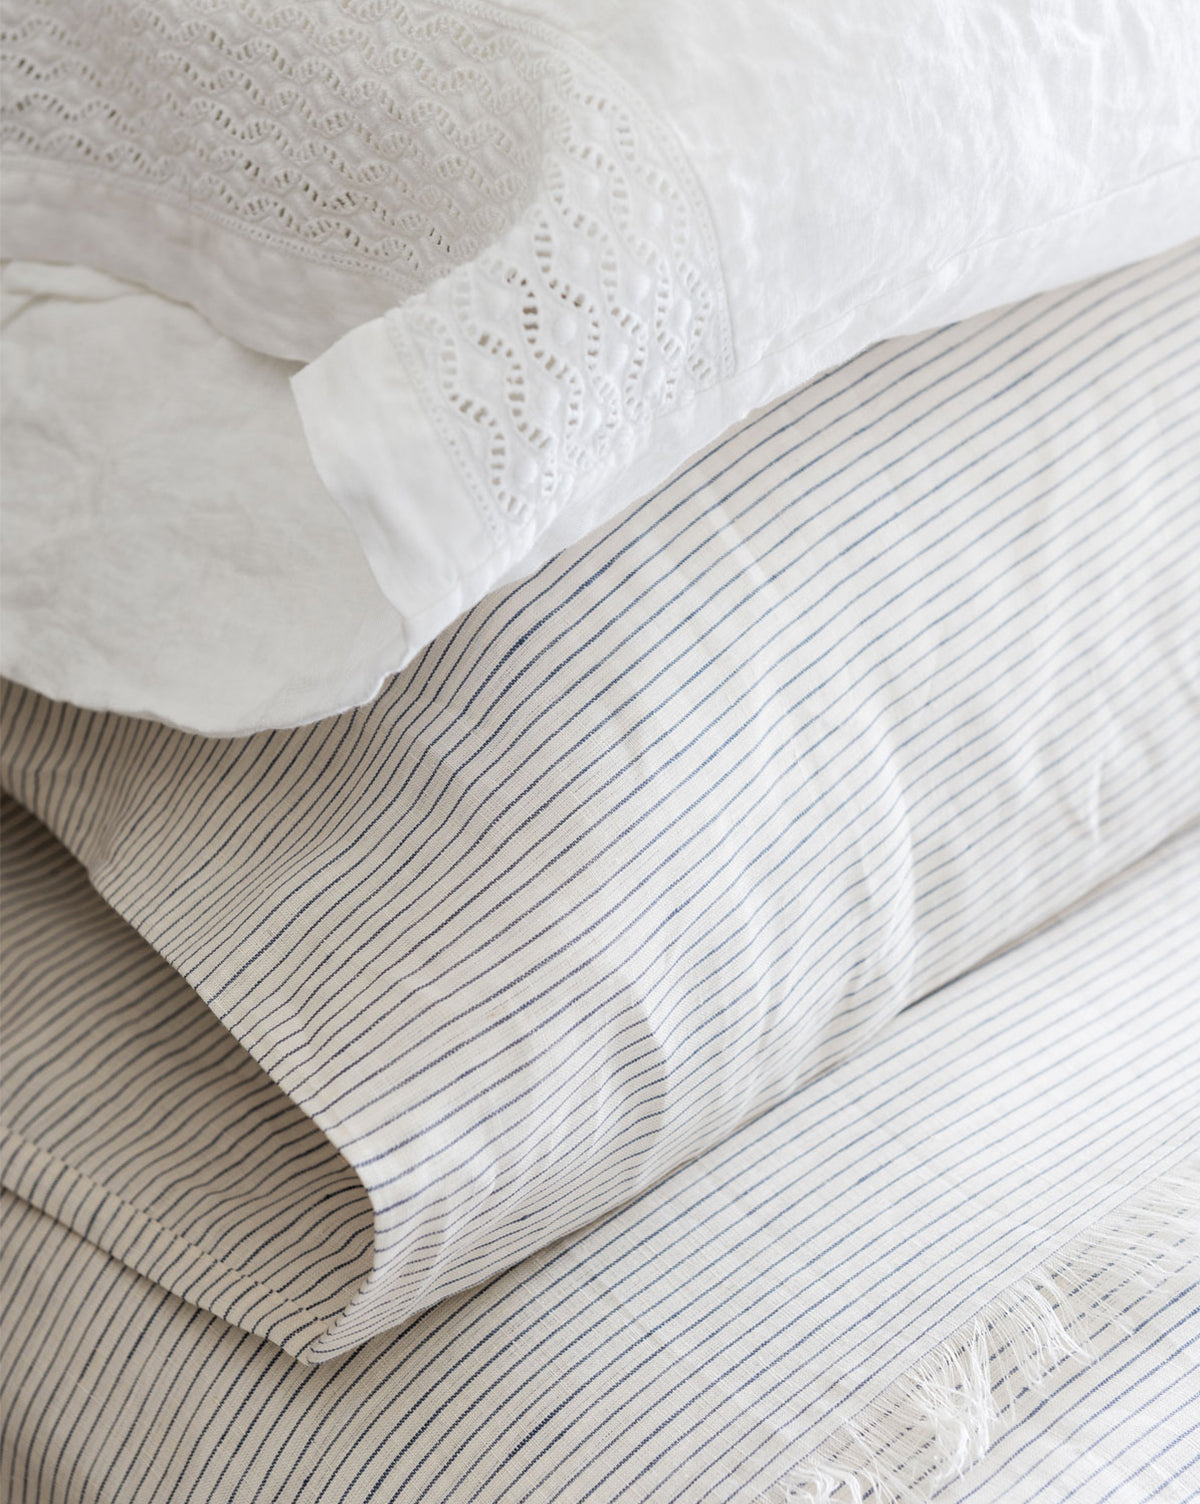 Lusten Linen Pillowcase (Set of 2)